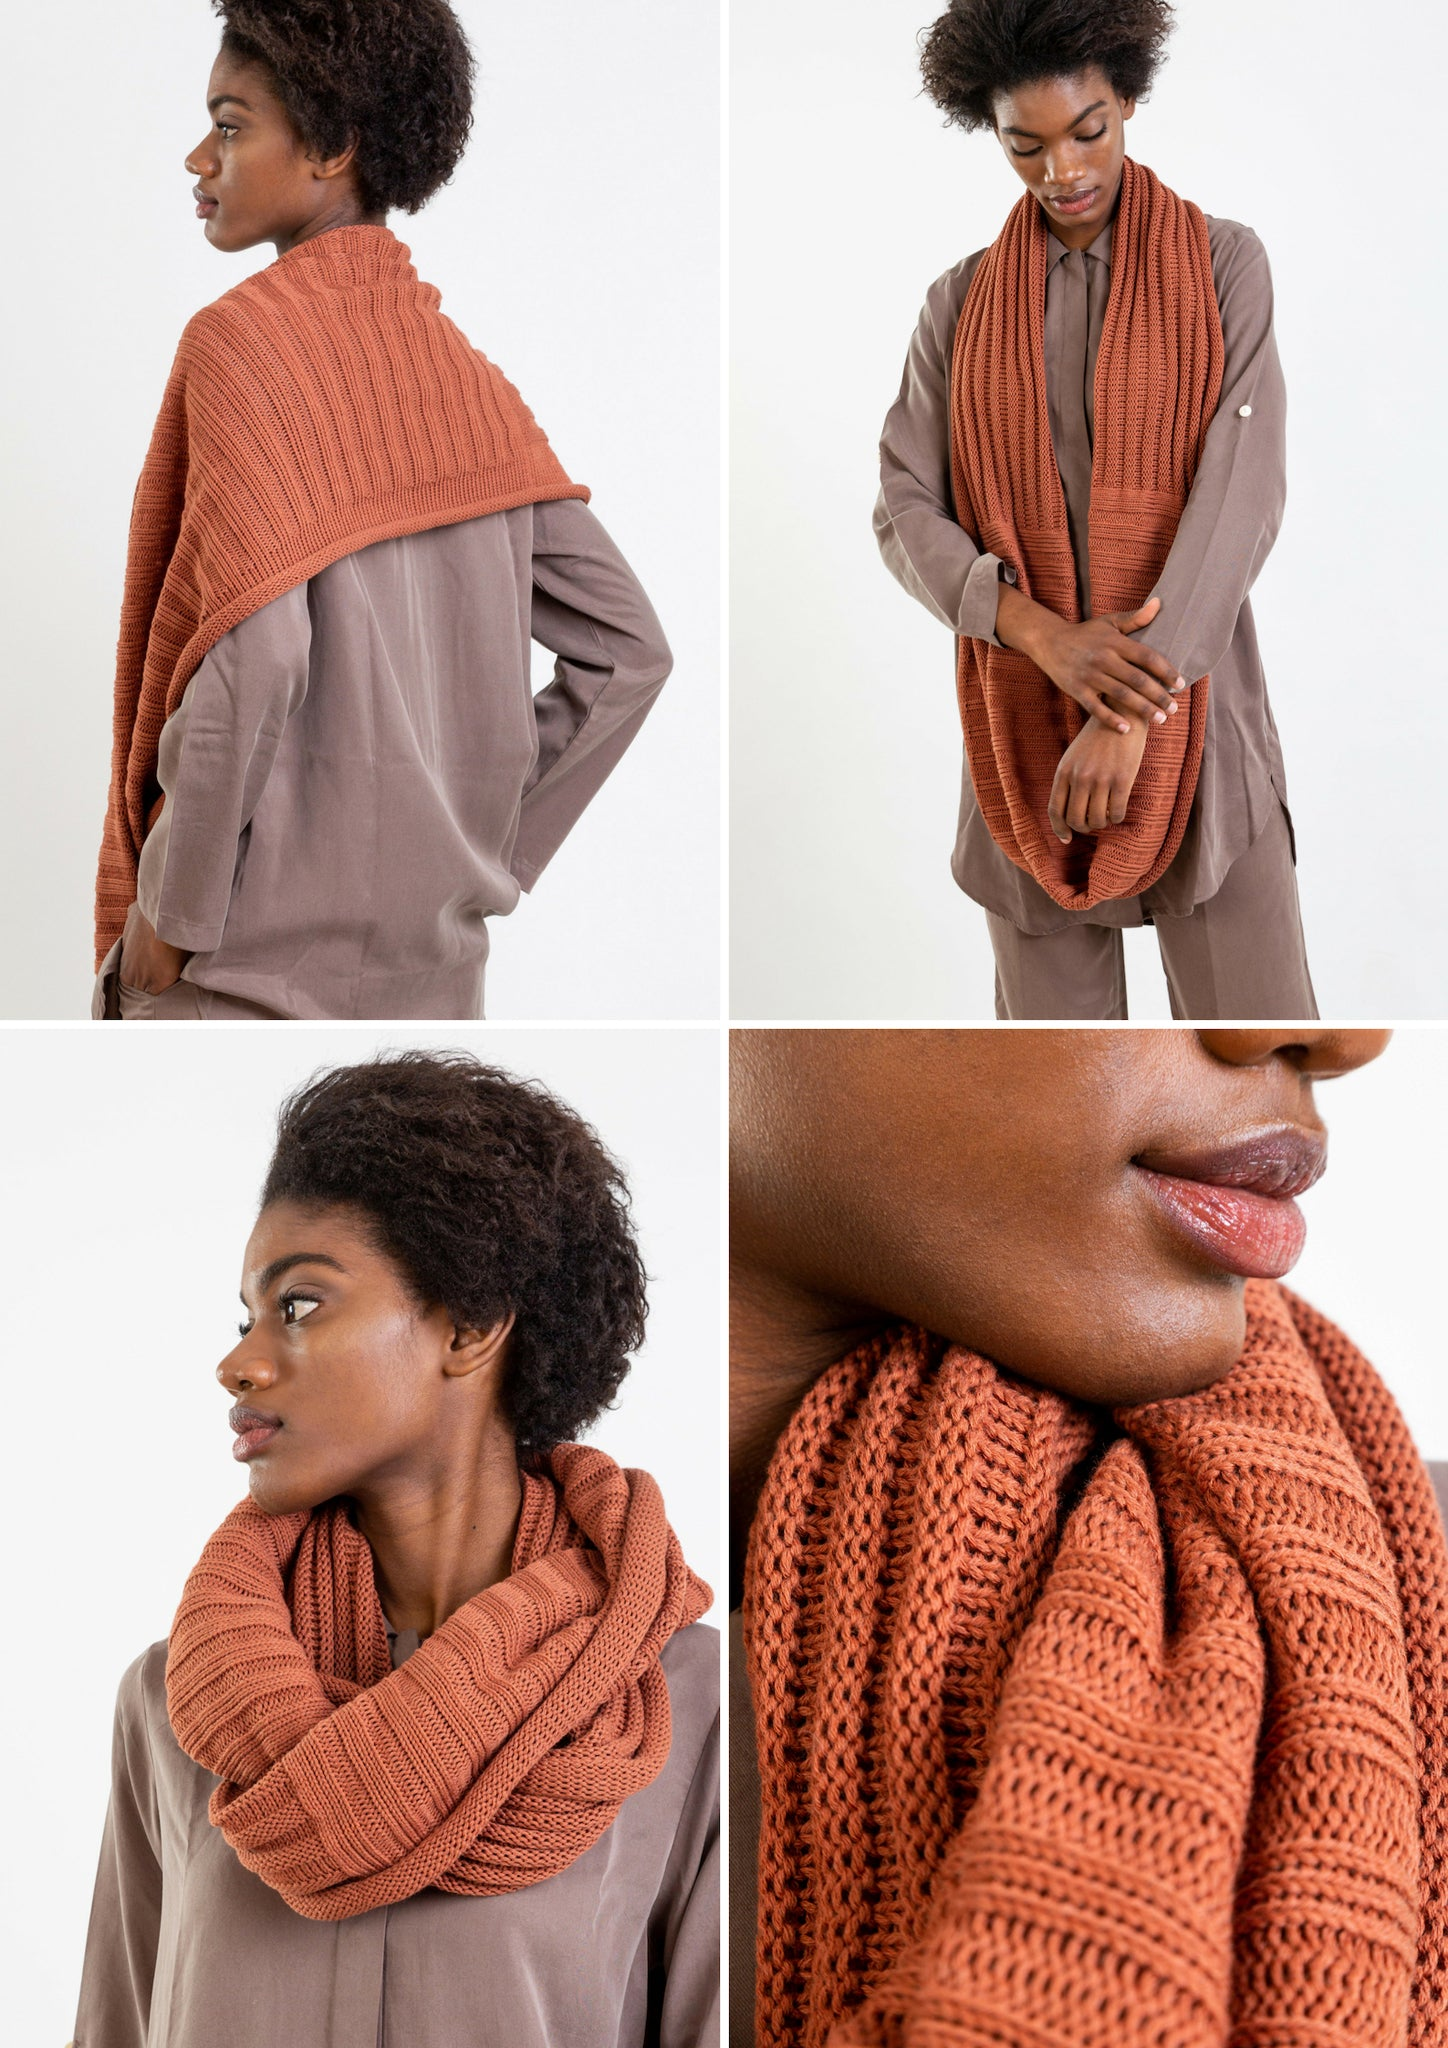 Multifunctional cinnamon scarf which can be worn as poncho, hoody or cape.